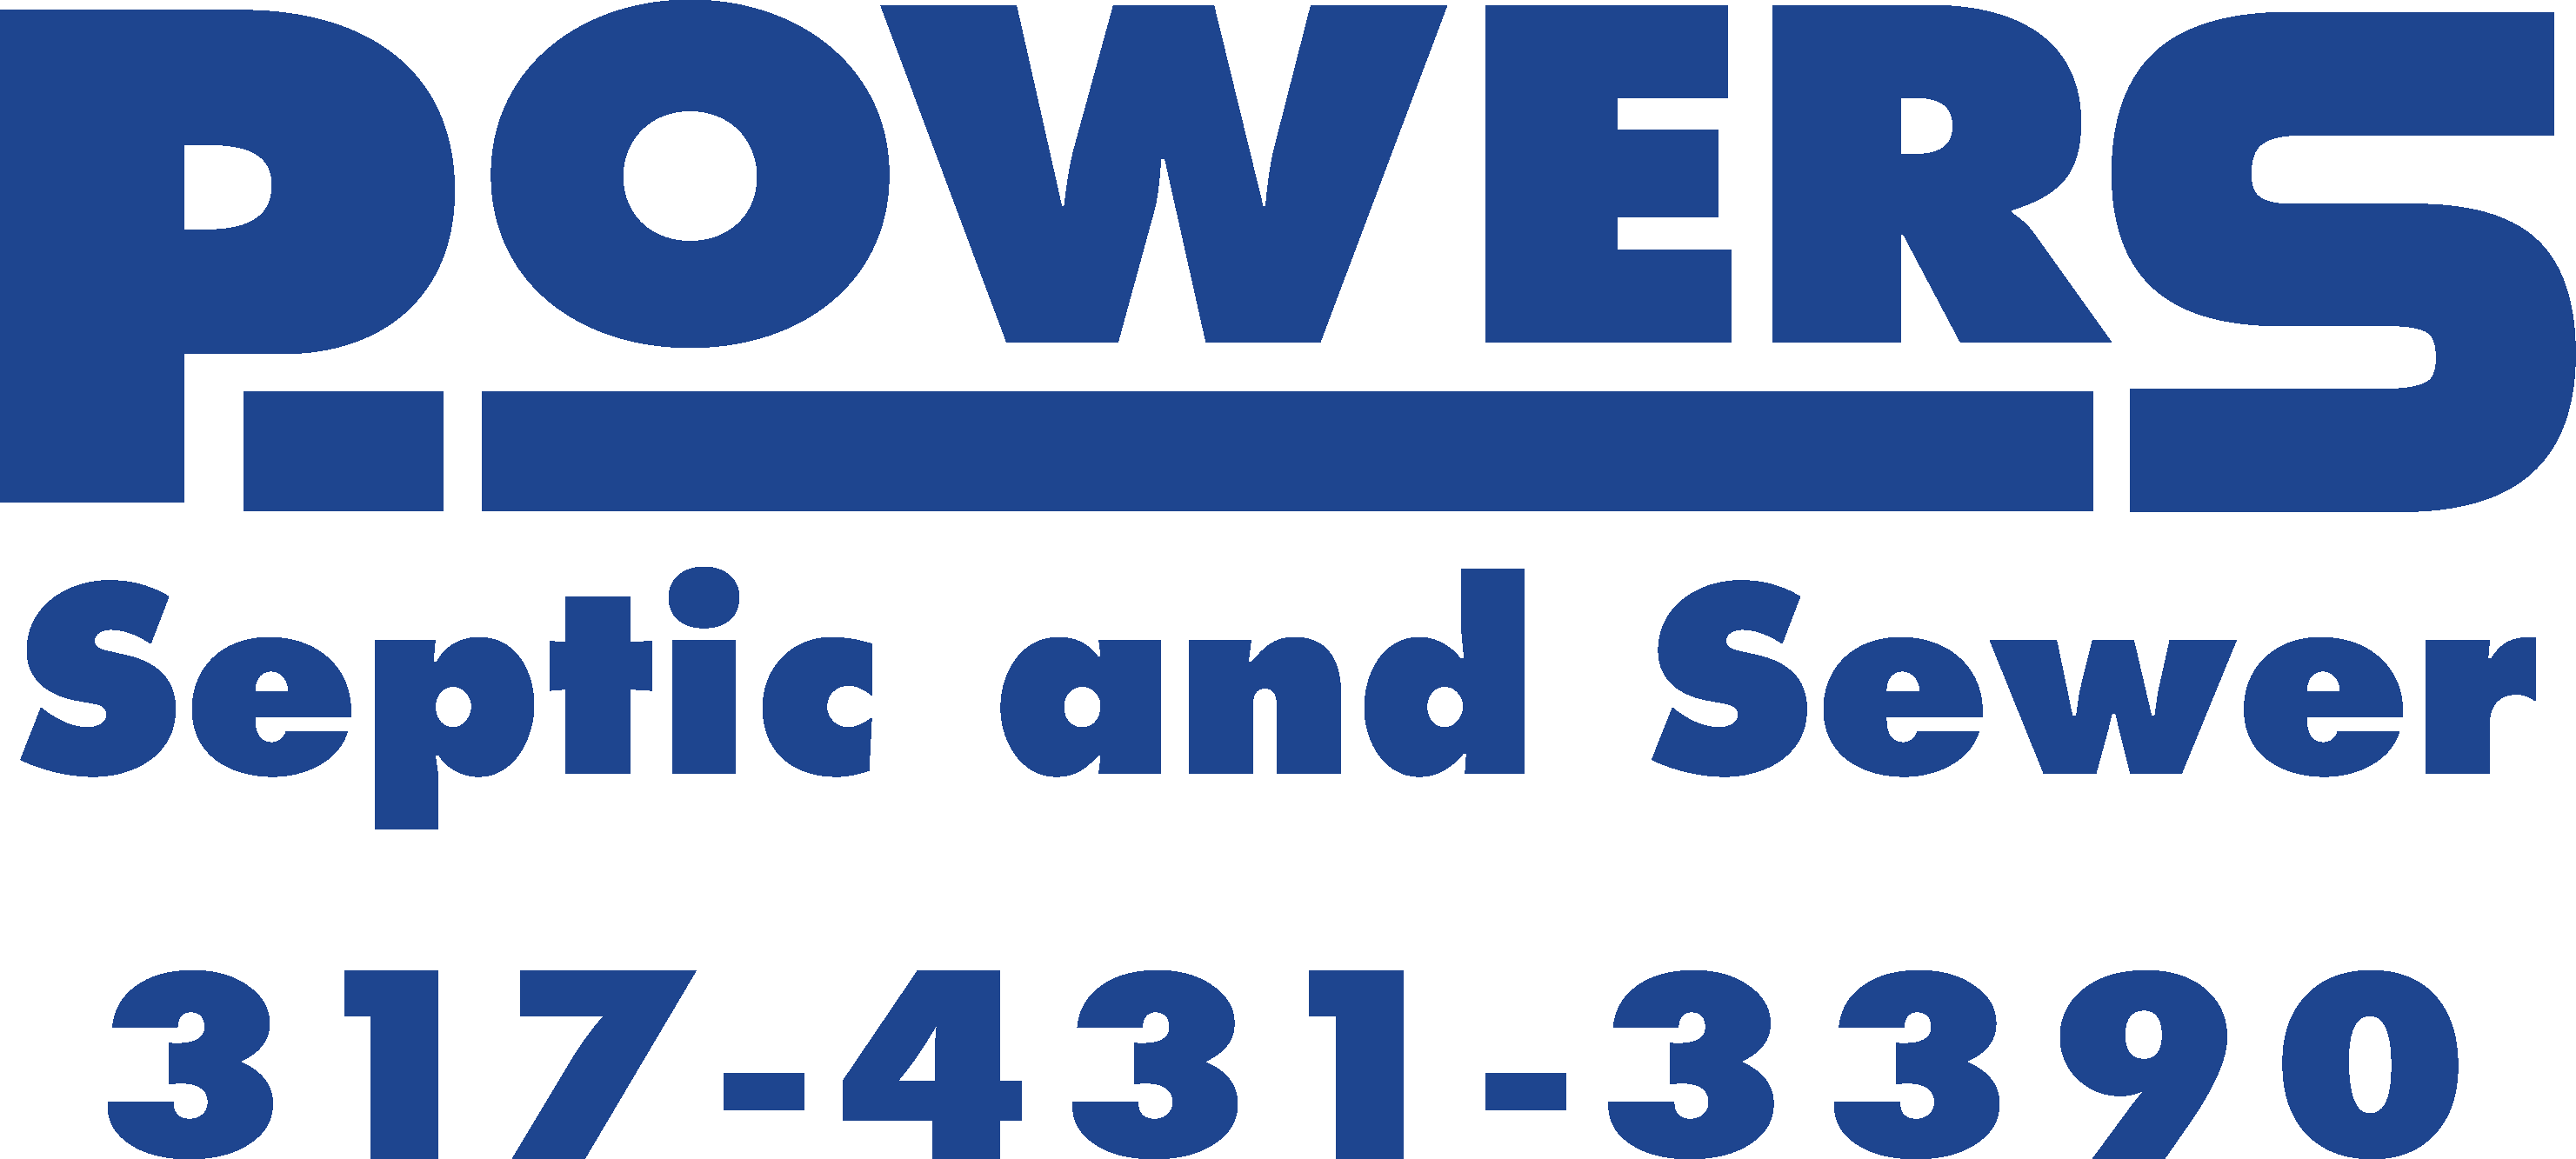 Powers Septic and Sewer